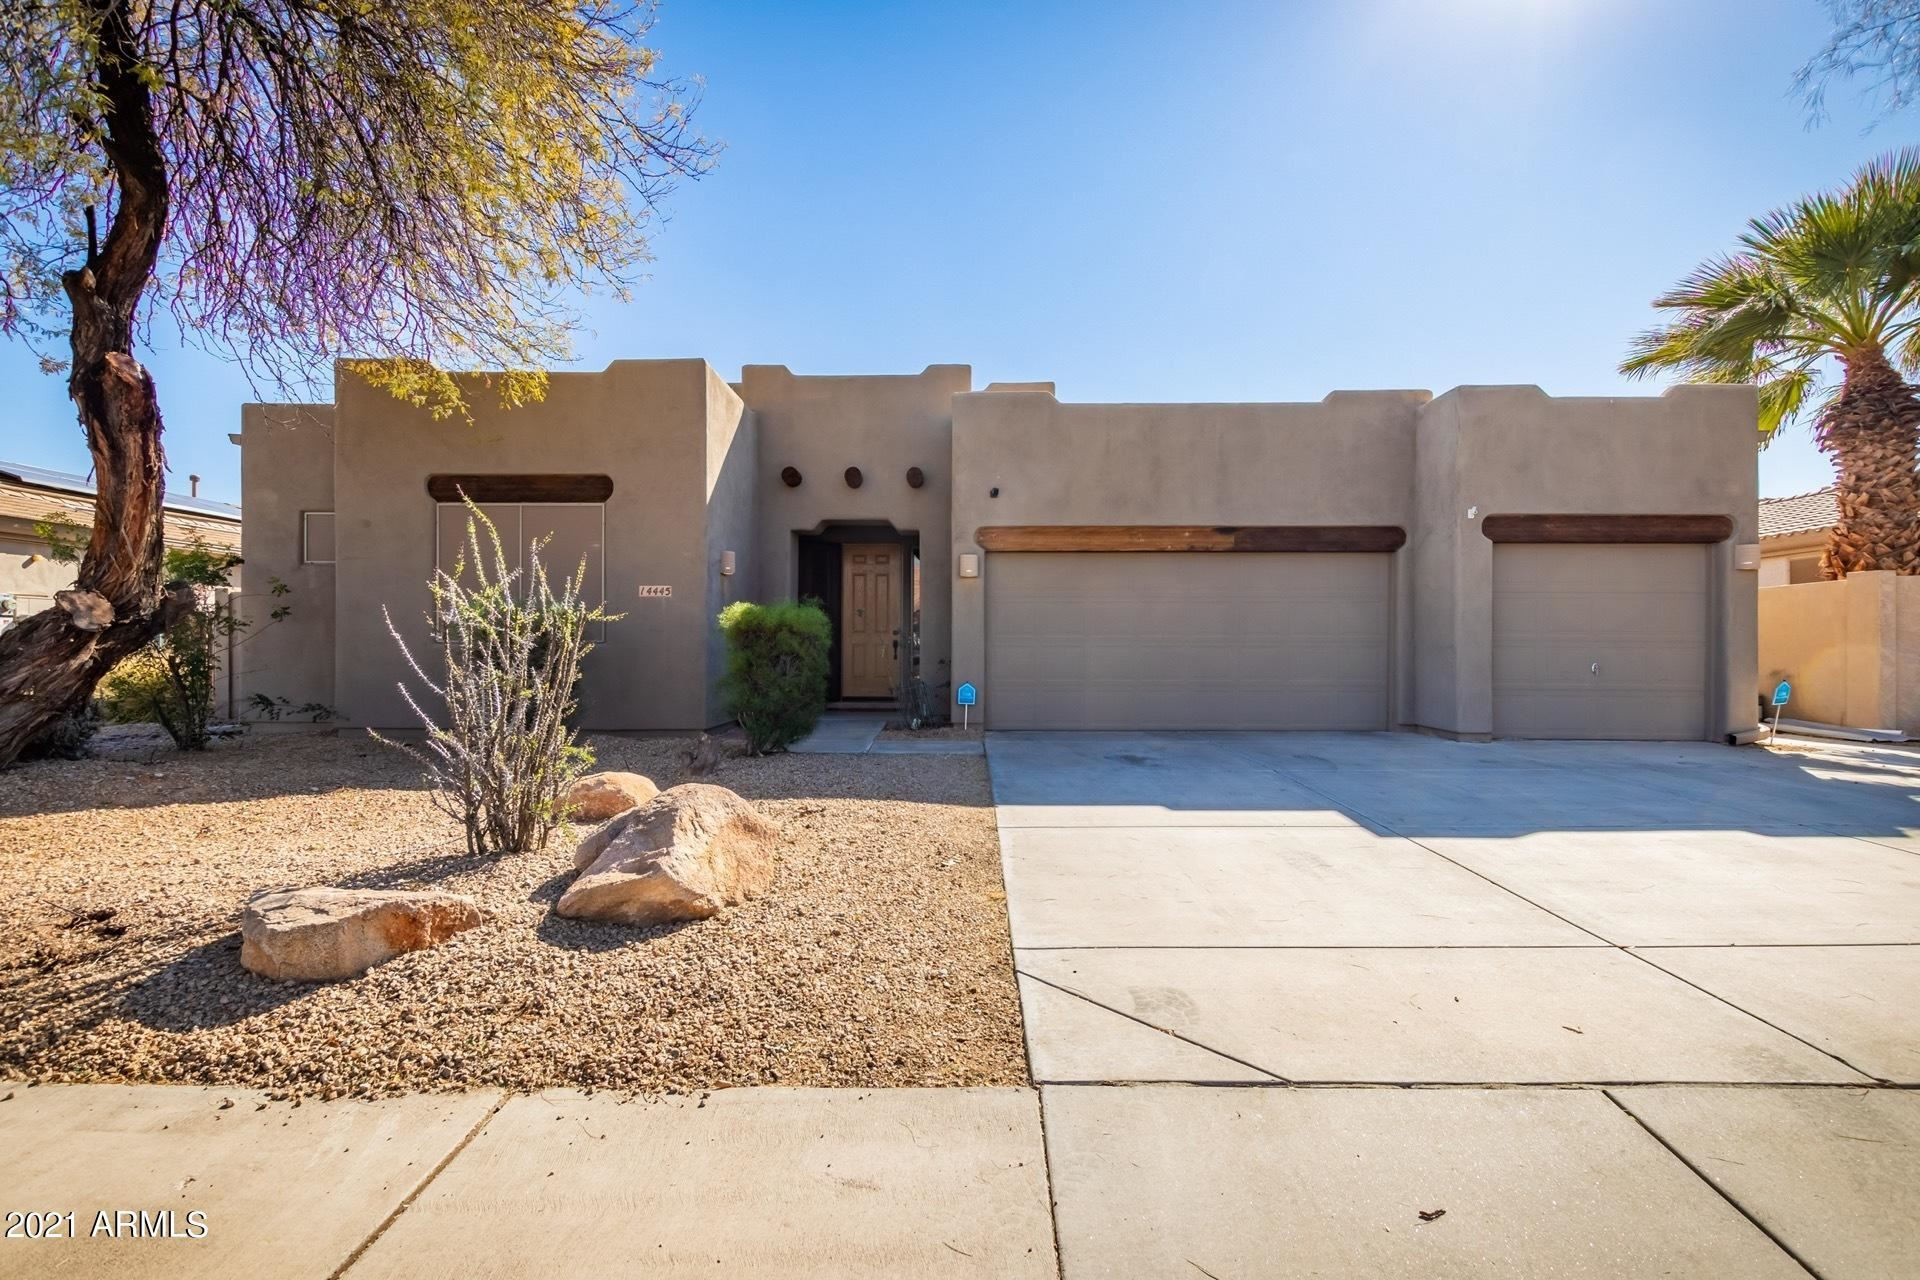 Photo of 14445 W LEXINGTON Avenue, Goodyear, AZ 85395 (MLS # 6197242)